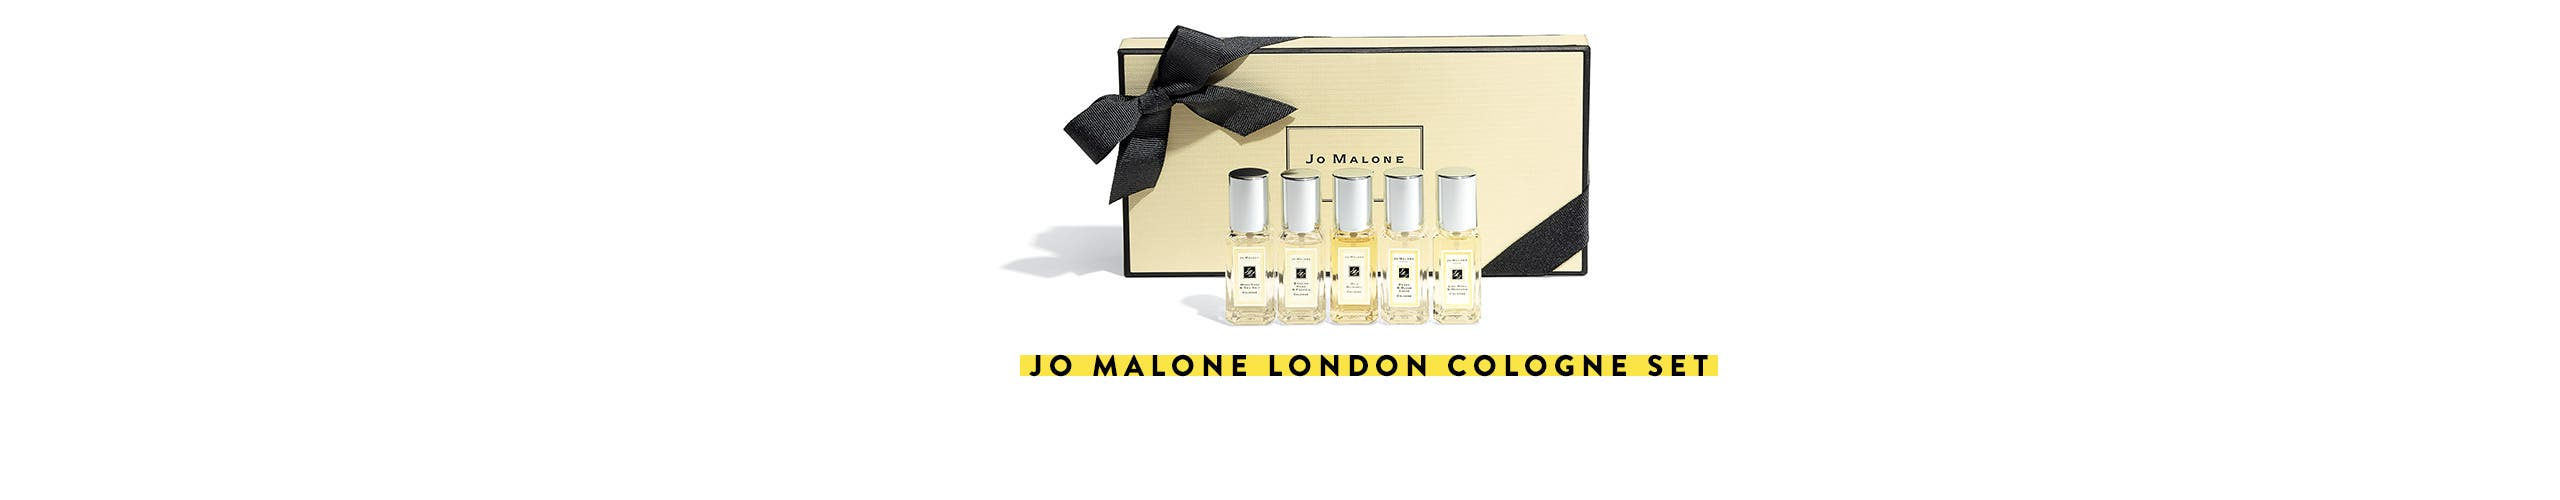 Jo Malone London cologne set.